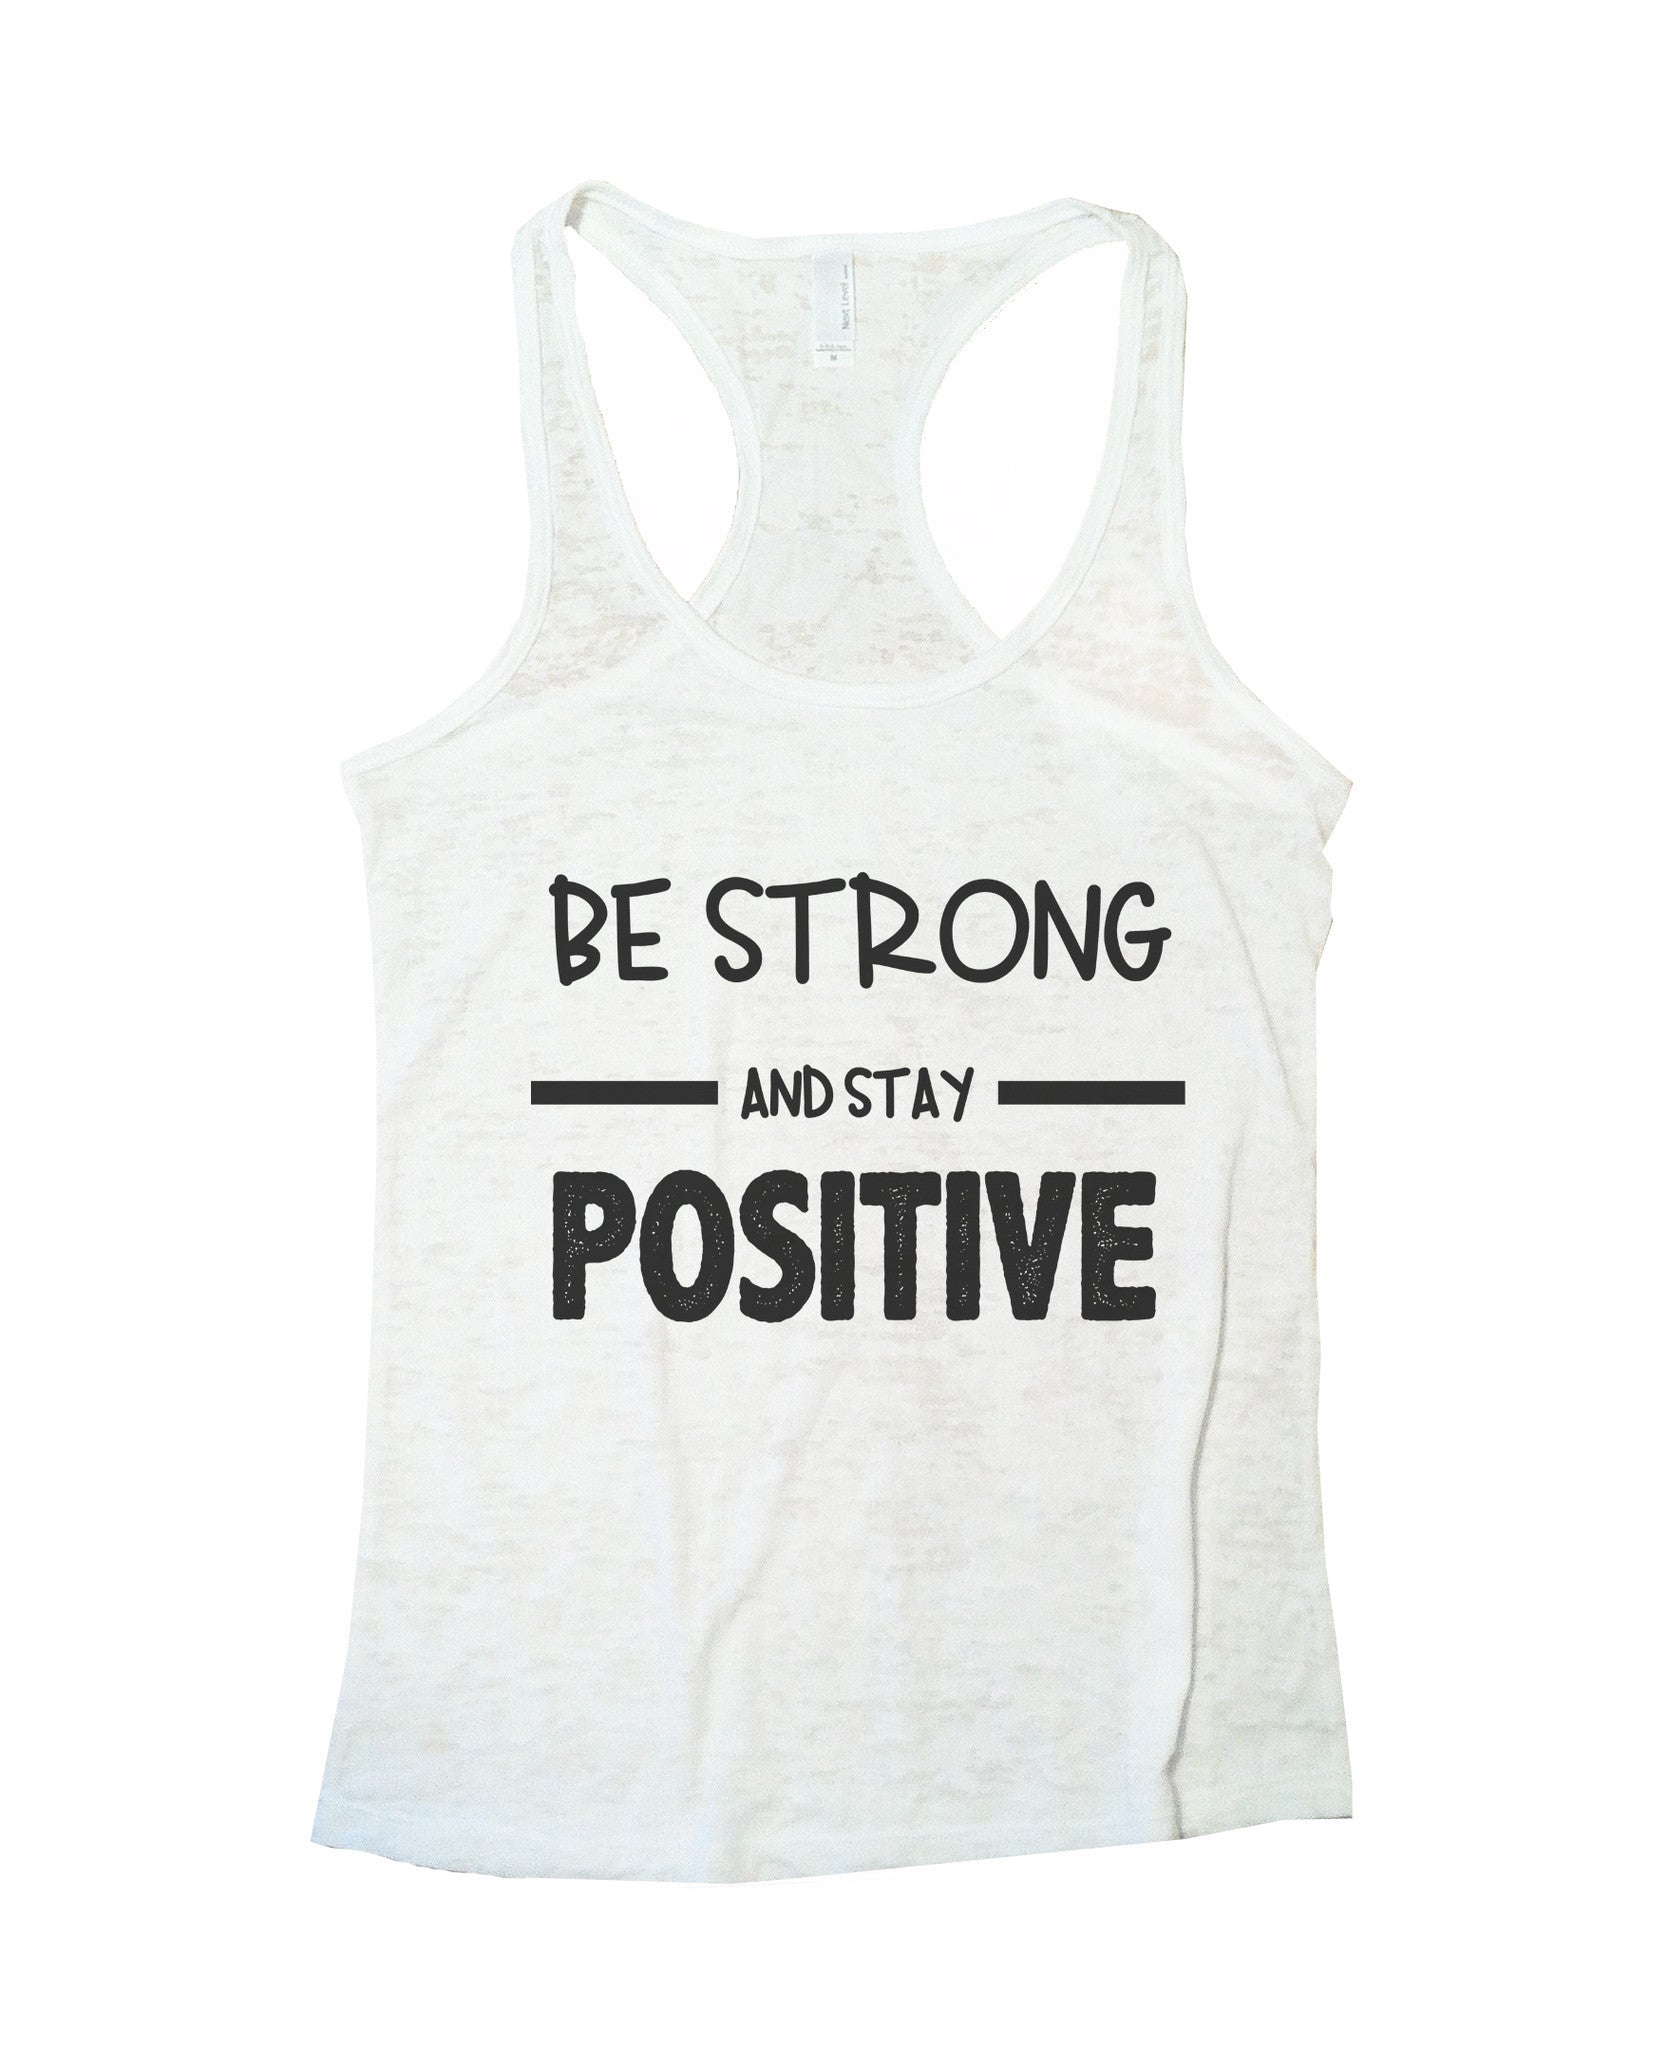 Be Strong And Stay Positive Womens Burnout Tank Top By BurnoutTankTops.com - 657 - Funny Shirts Tank Tops Burnouts and Triblends  - 6